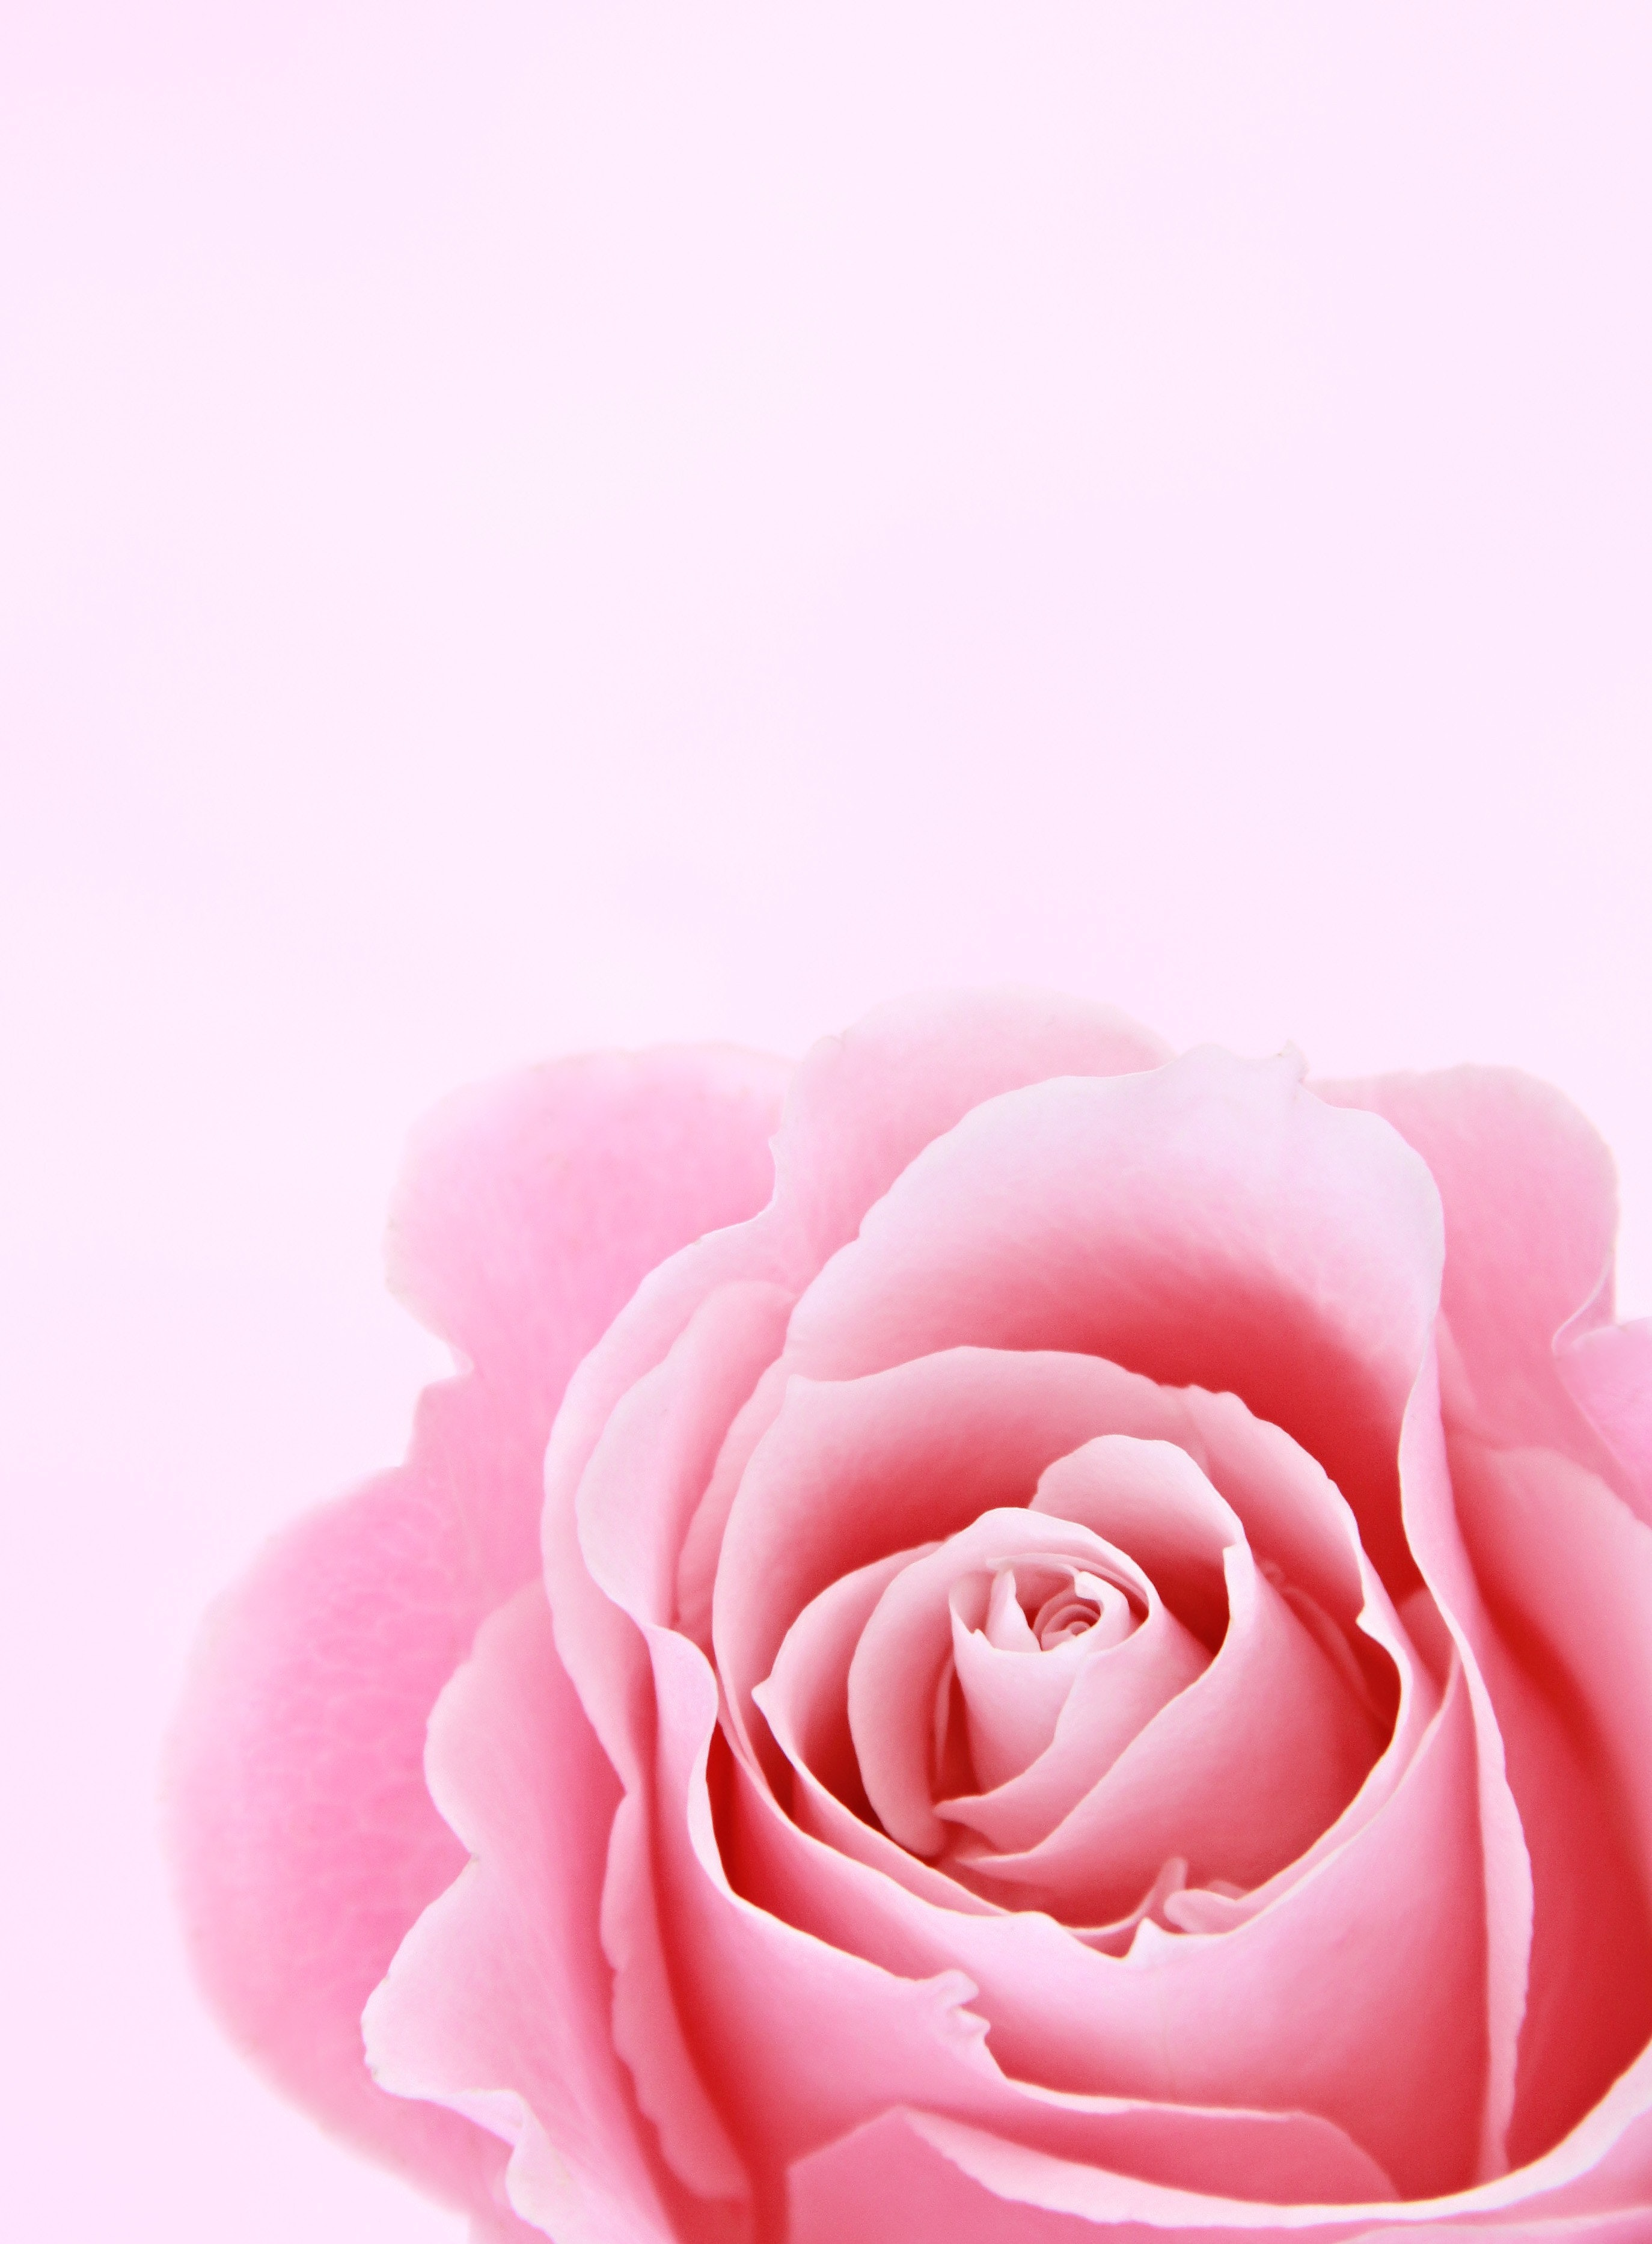 1000 beautiful roses background photos pexels free stock photos - 1000 color wallpapers ...